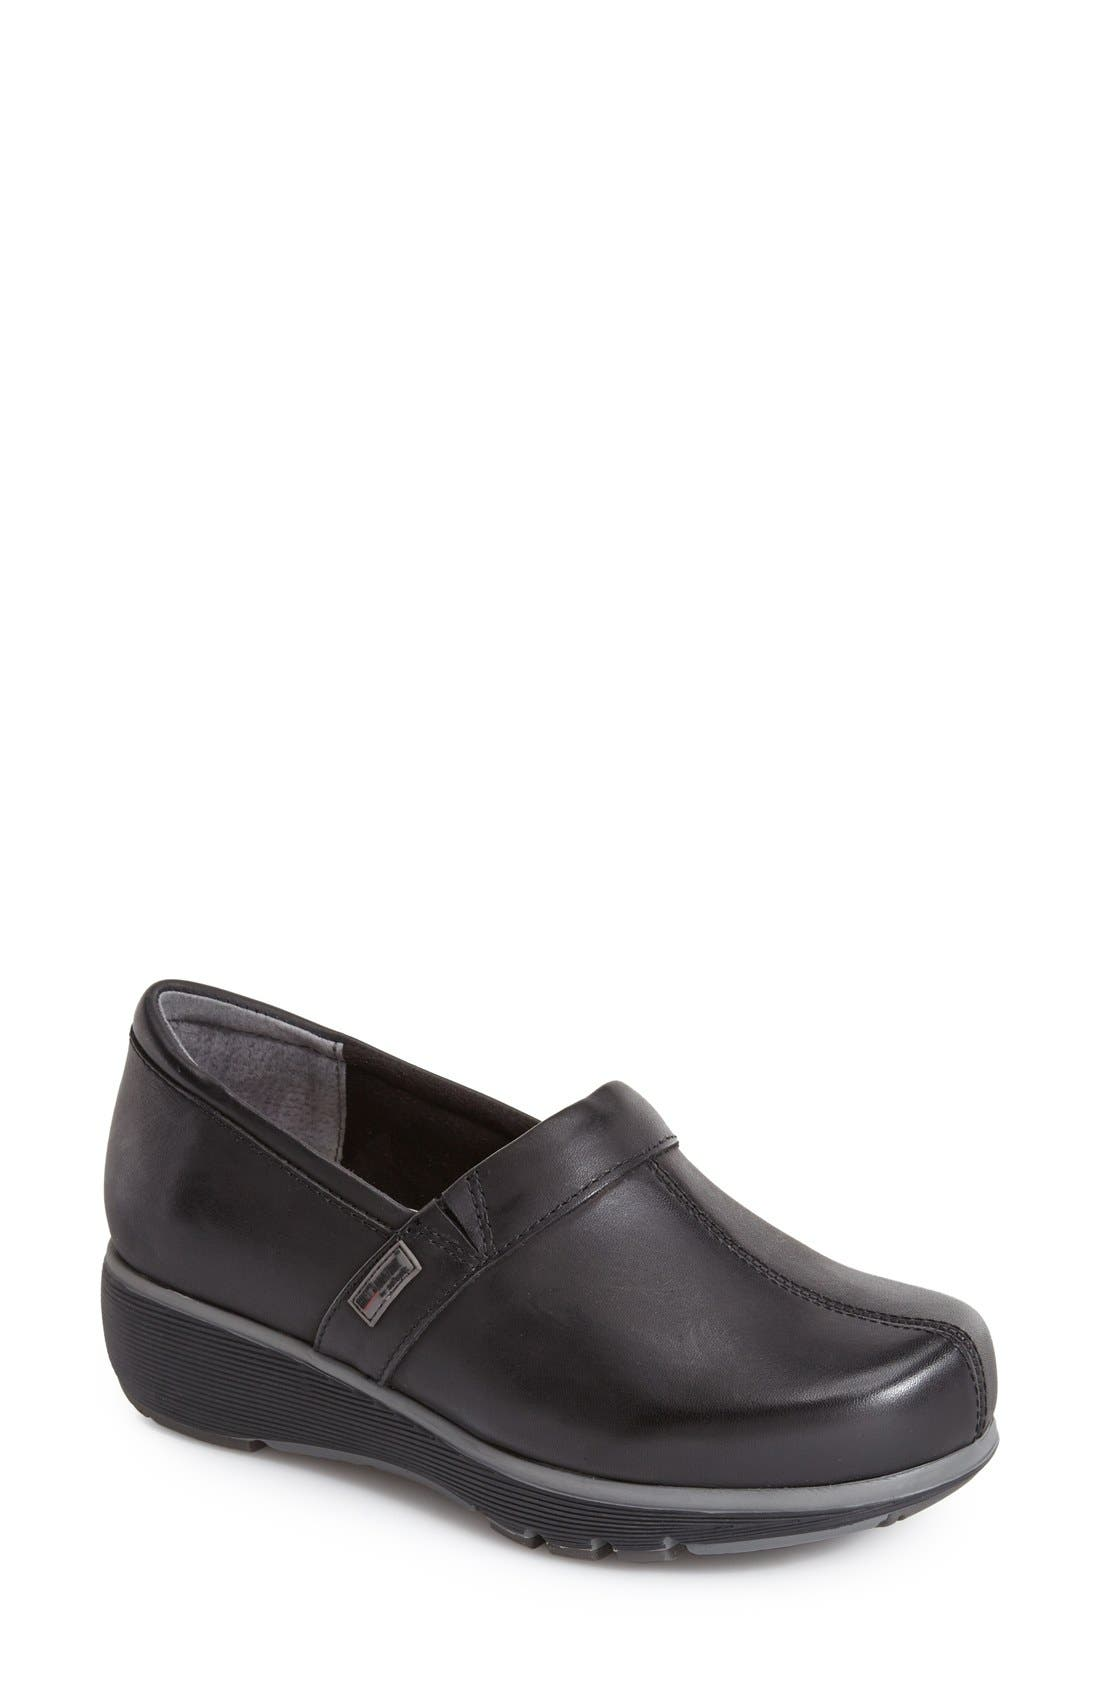 SOFTWALK<SUP>®</SUP> Greys Anatomy<sup>®</sup> by SoftWalk<sup>®</sup> Meredith Leather Clog